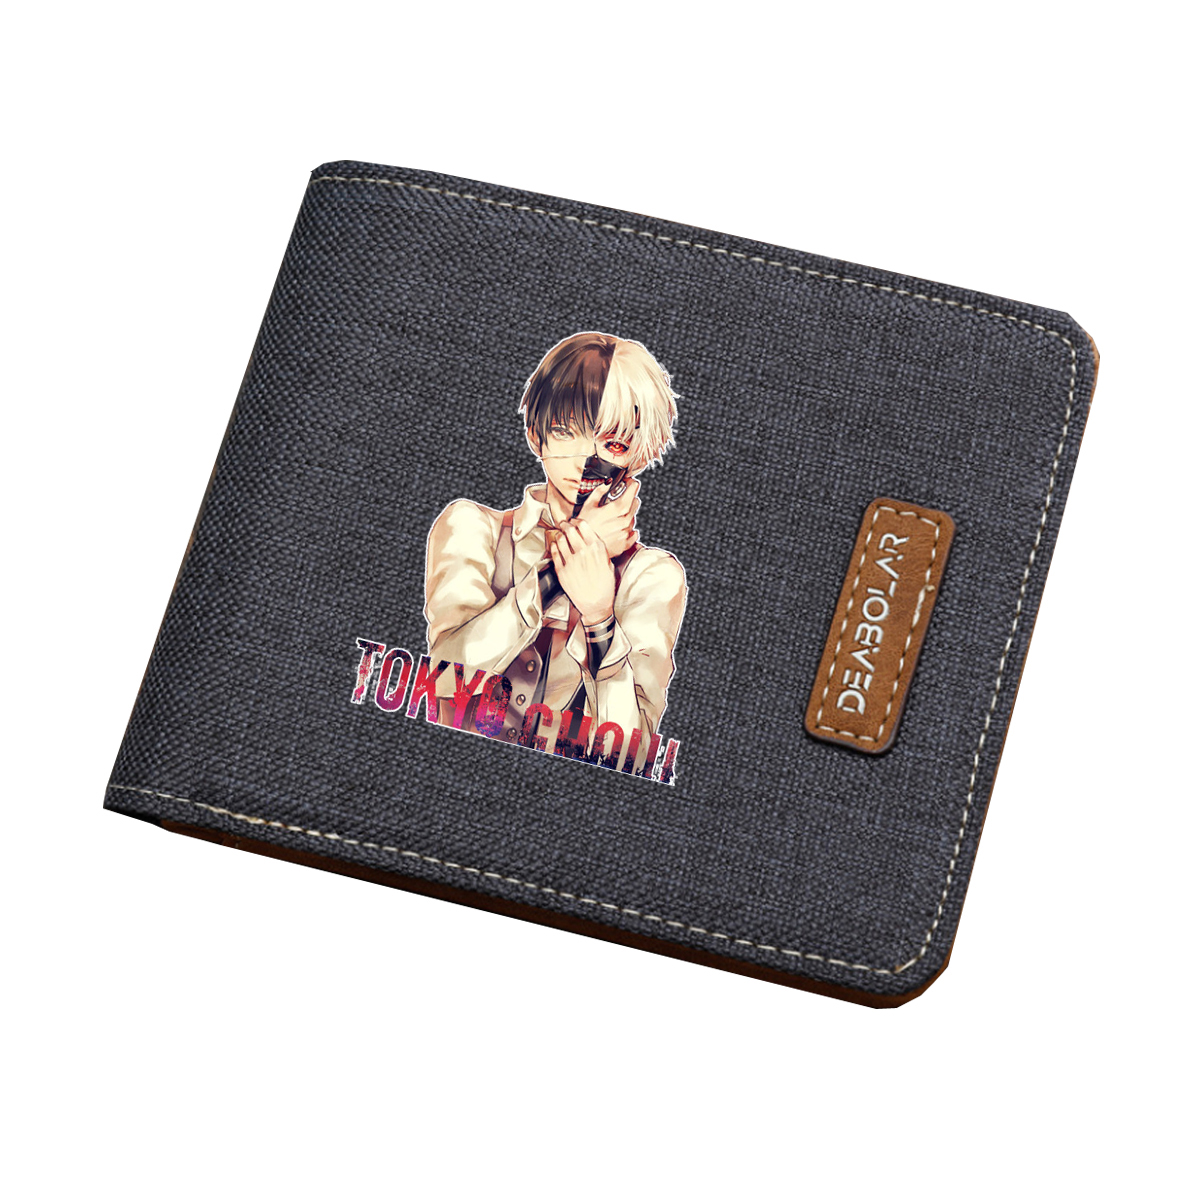 Anime Tokyo Ghoul wallet mens and womens folding wallets peripheral binary secondary wallet youth short Wallet